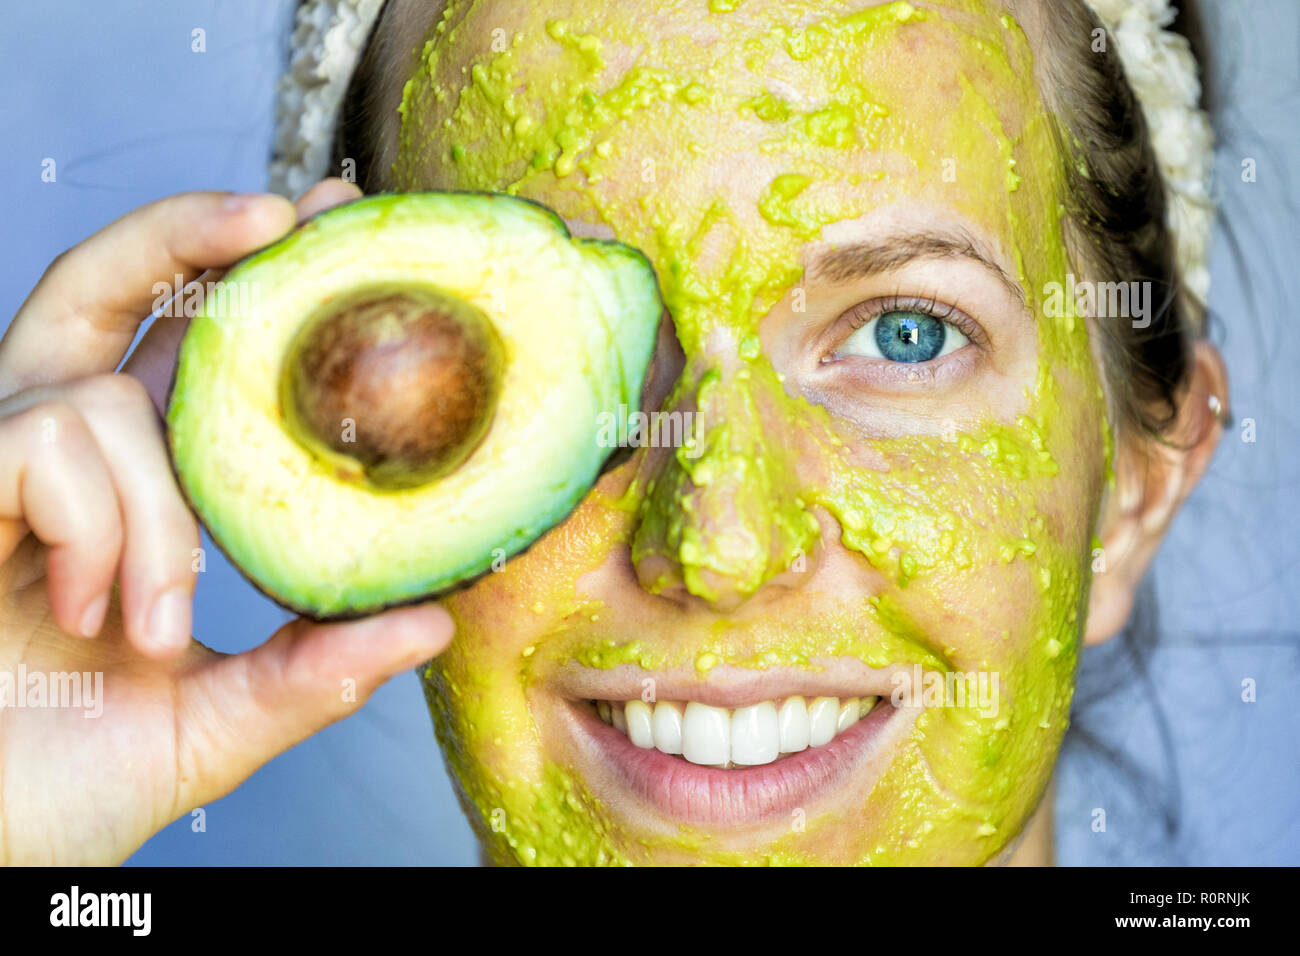 Twenties female with an avocado face mask. - Stock Image